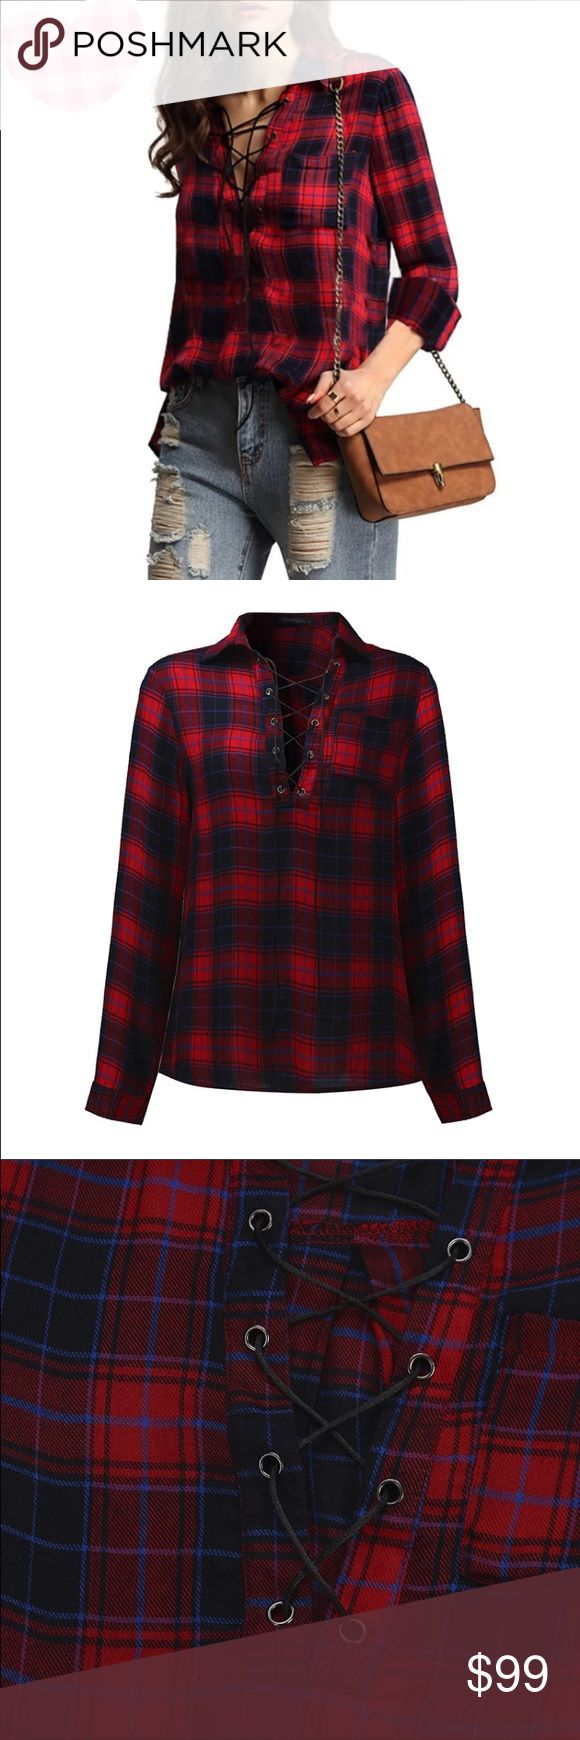 Coming soon plaid lace up shirt Coming soon, price will change when item becomes available for purchase. boutique Tops